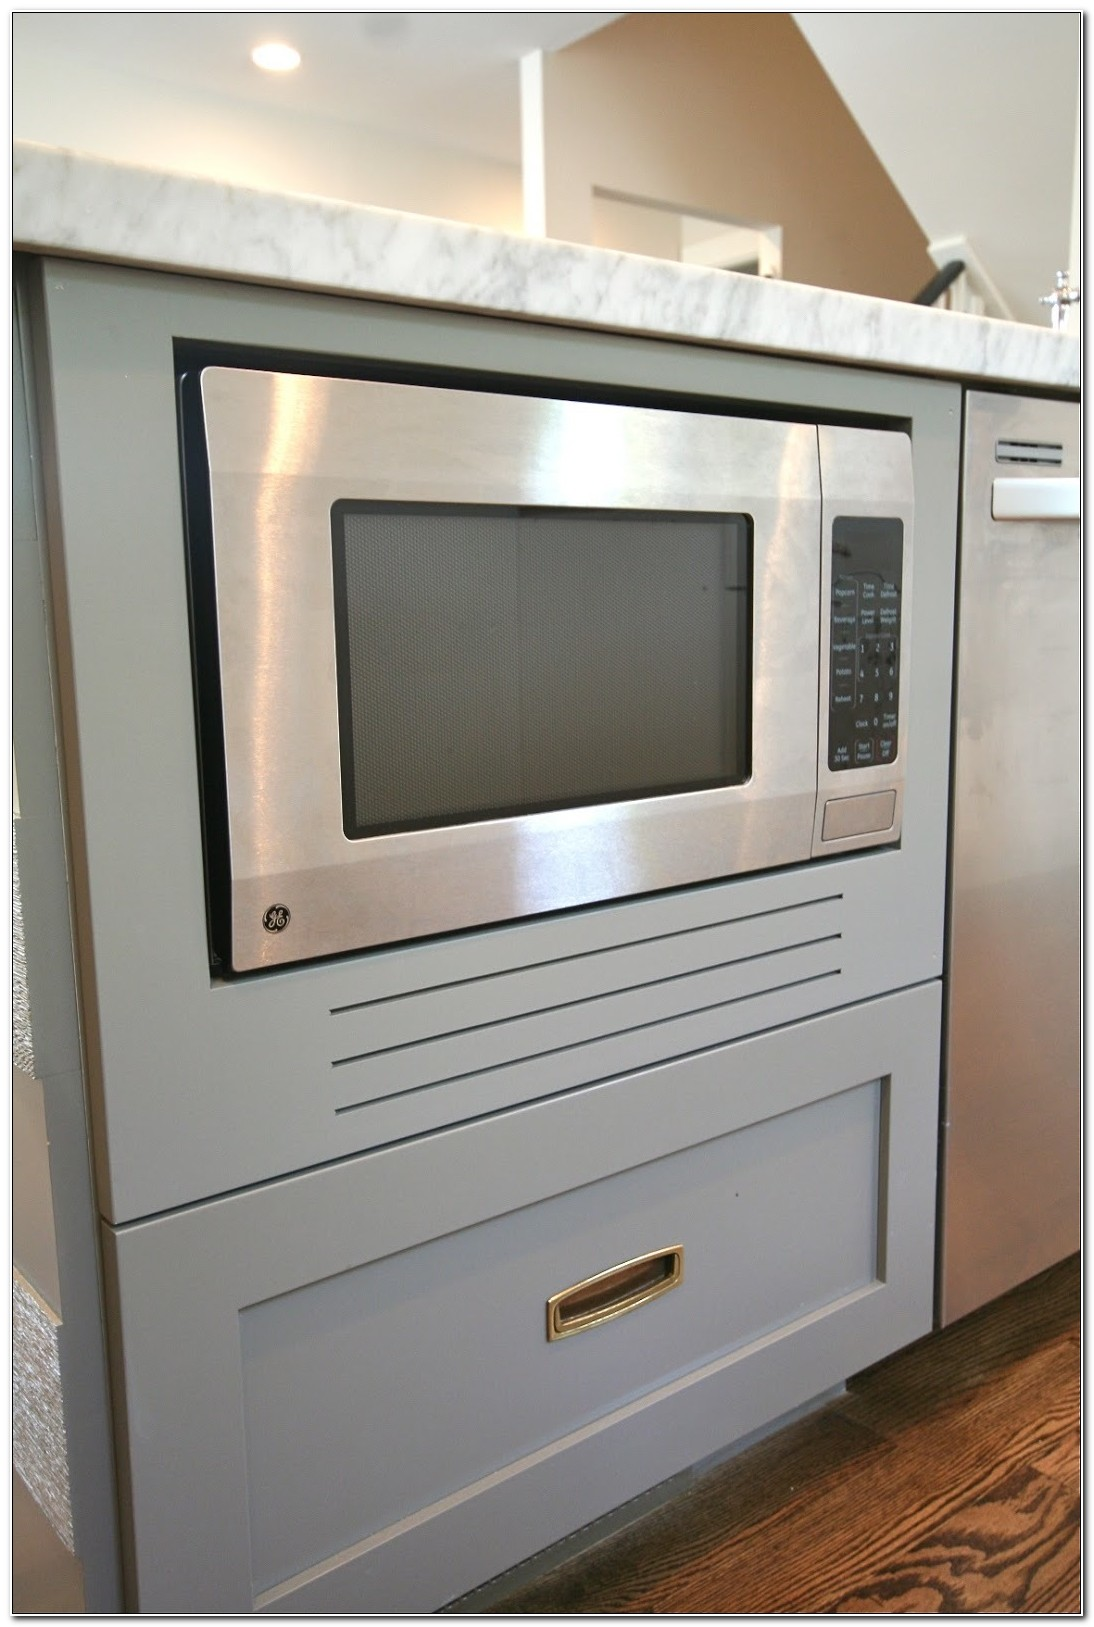 Countertop Microwave In Built In Cabinet